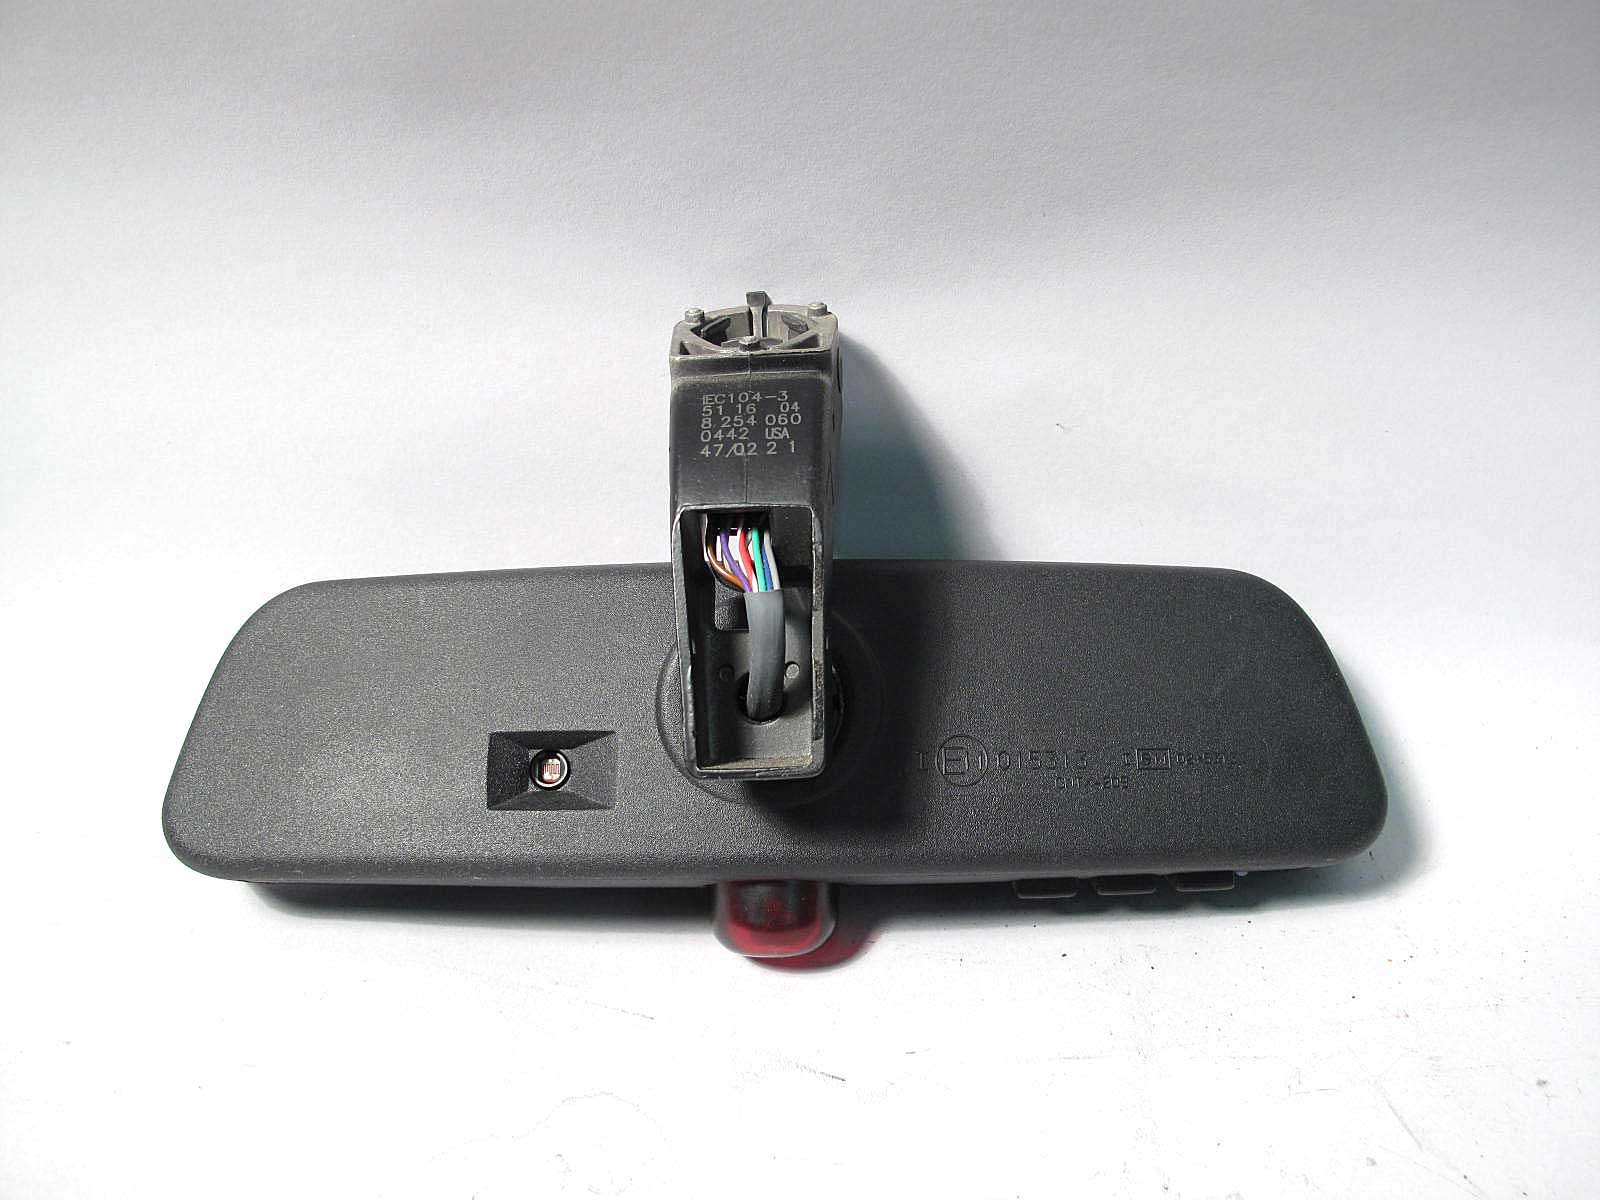 Bmw e46 convertible rearview mirror w garage door opener 2000 2006 please note that the pictures are stock photos rubansaba